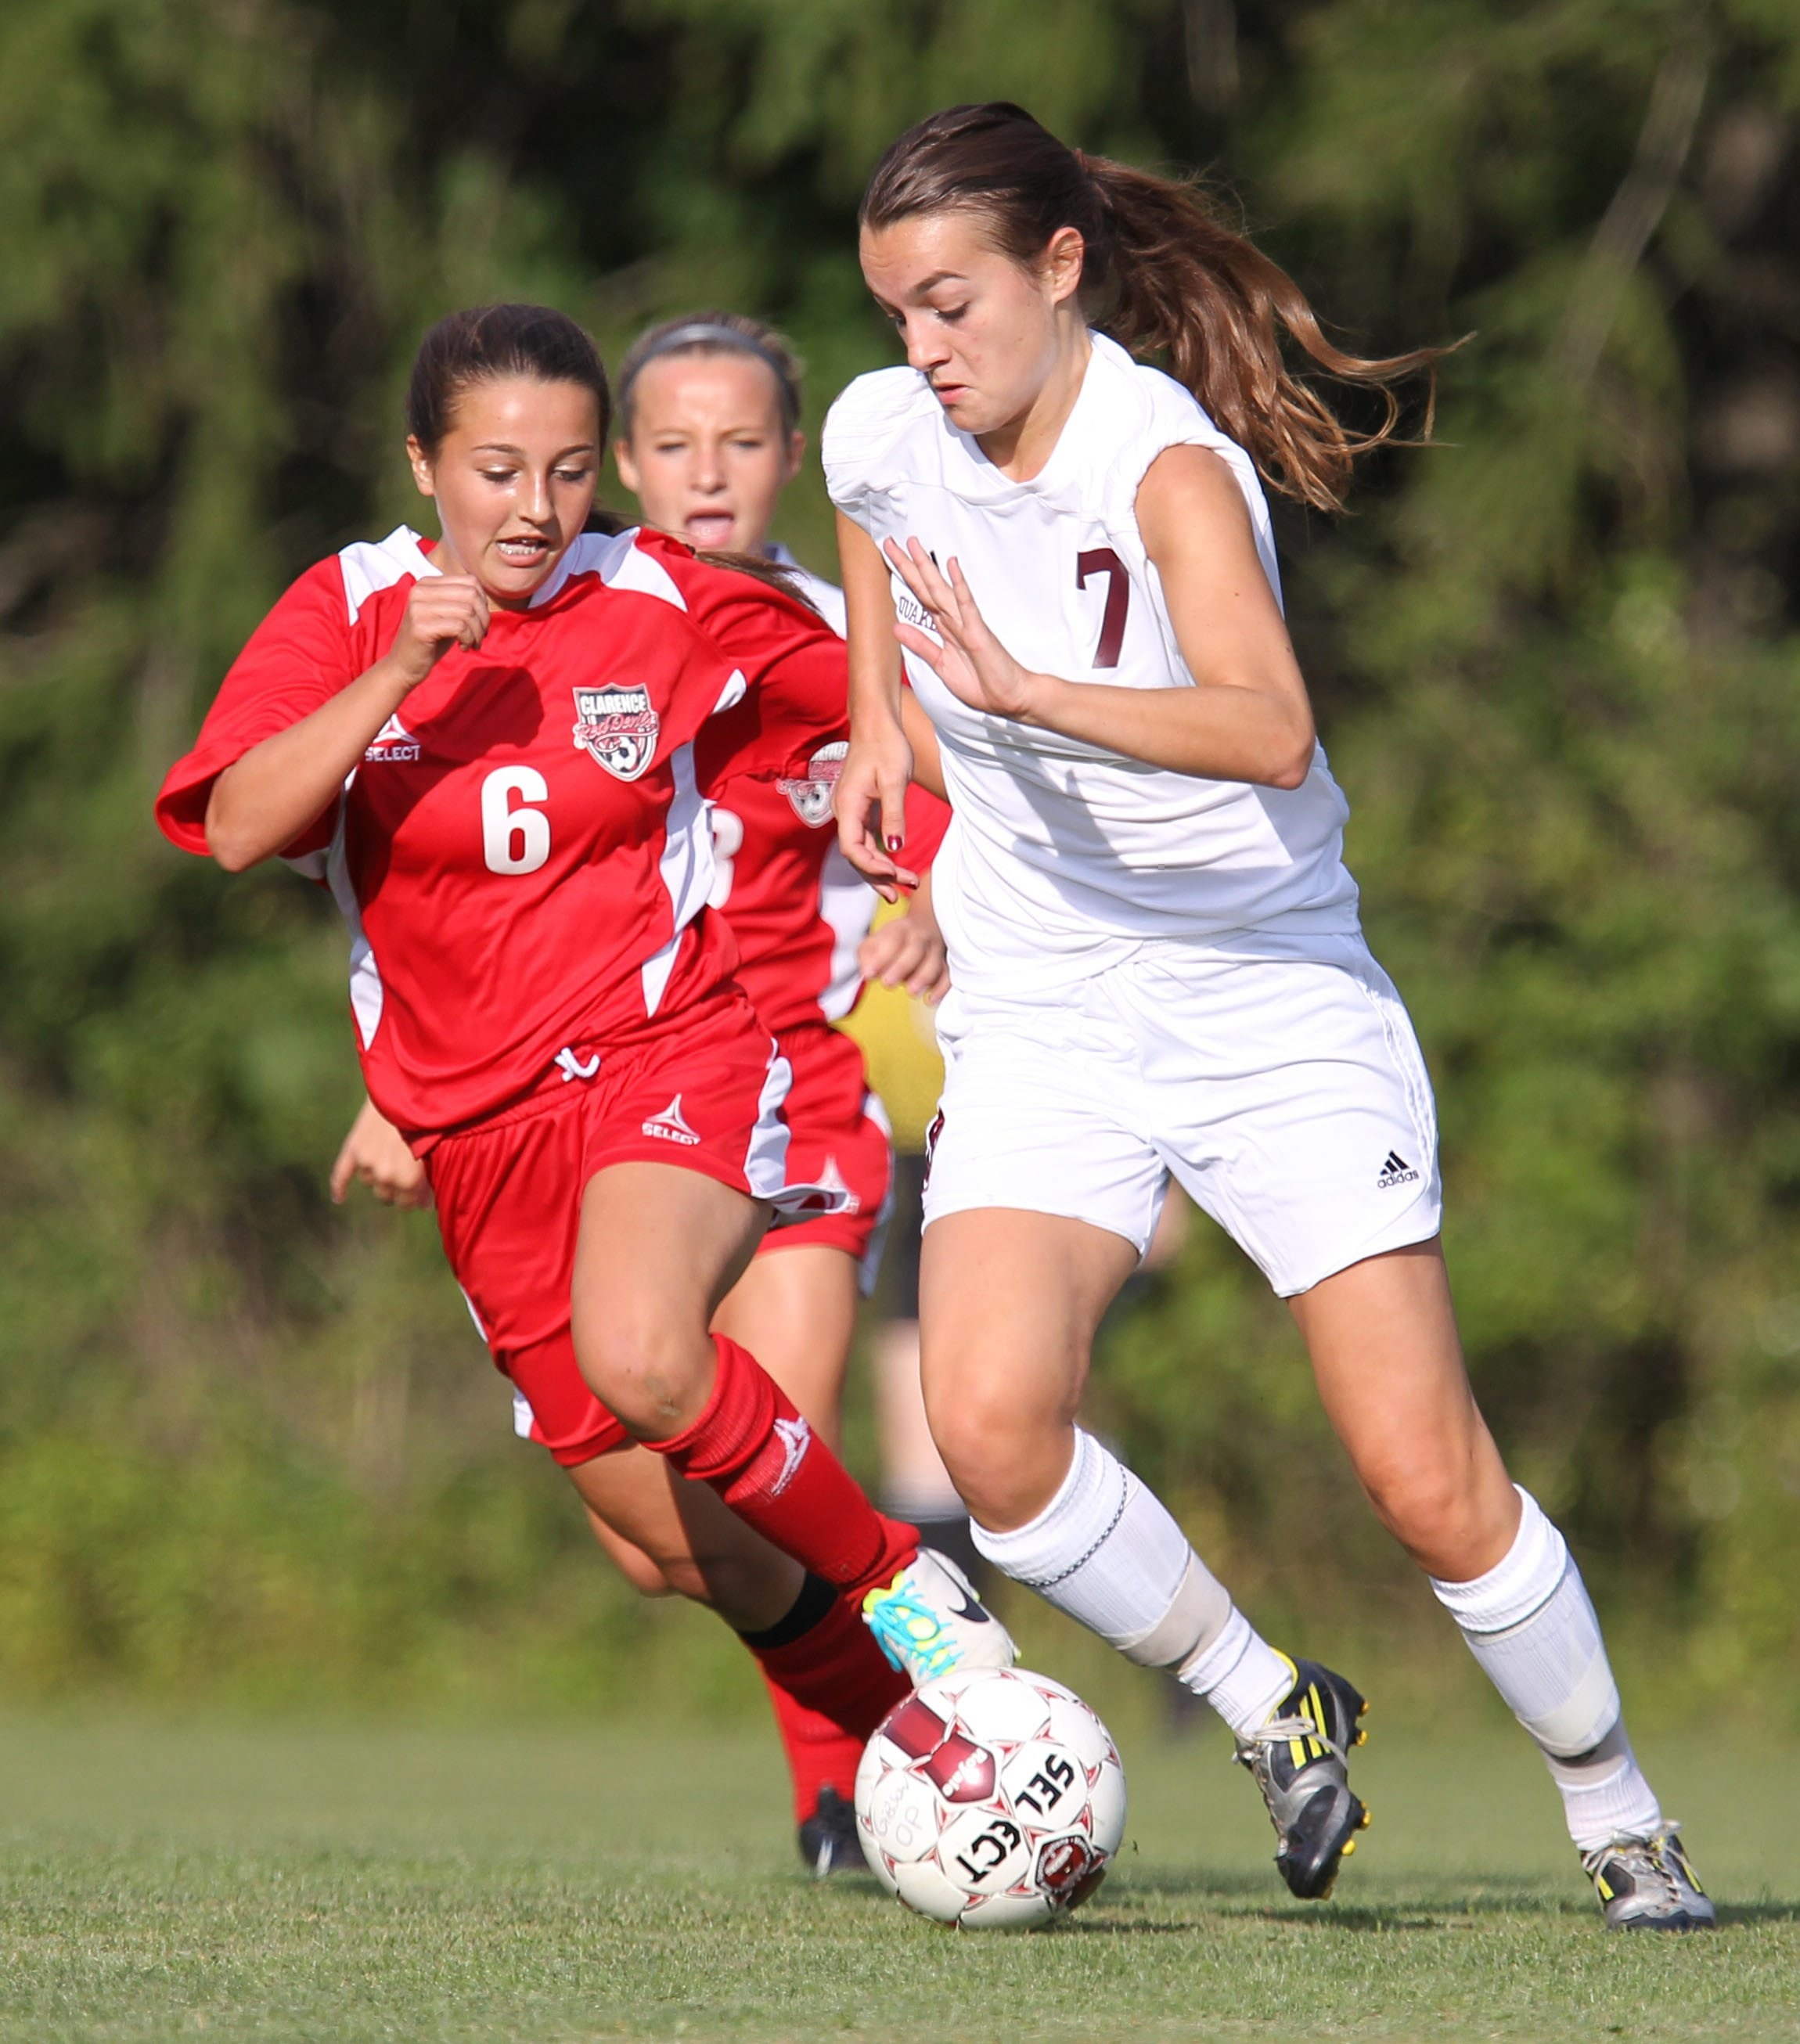 Orchard Park's Emma Saul (7) moves the ball past Clarence's Riley Bowers during the first half of their game at Orchard Park on Friday.